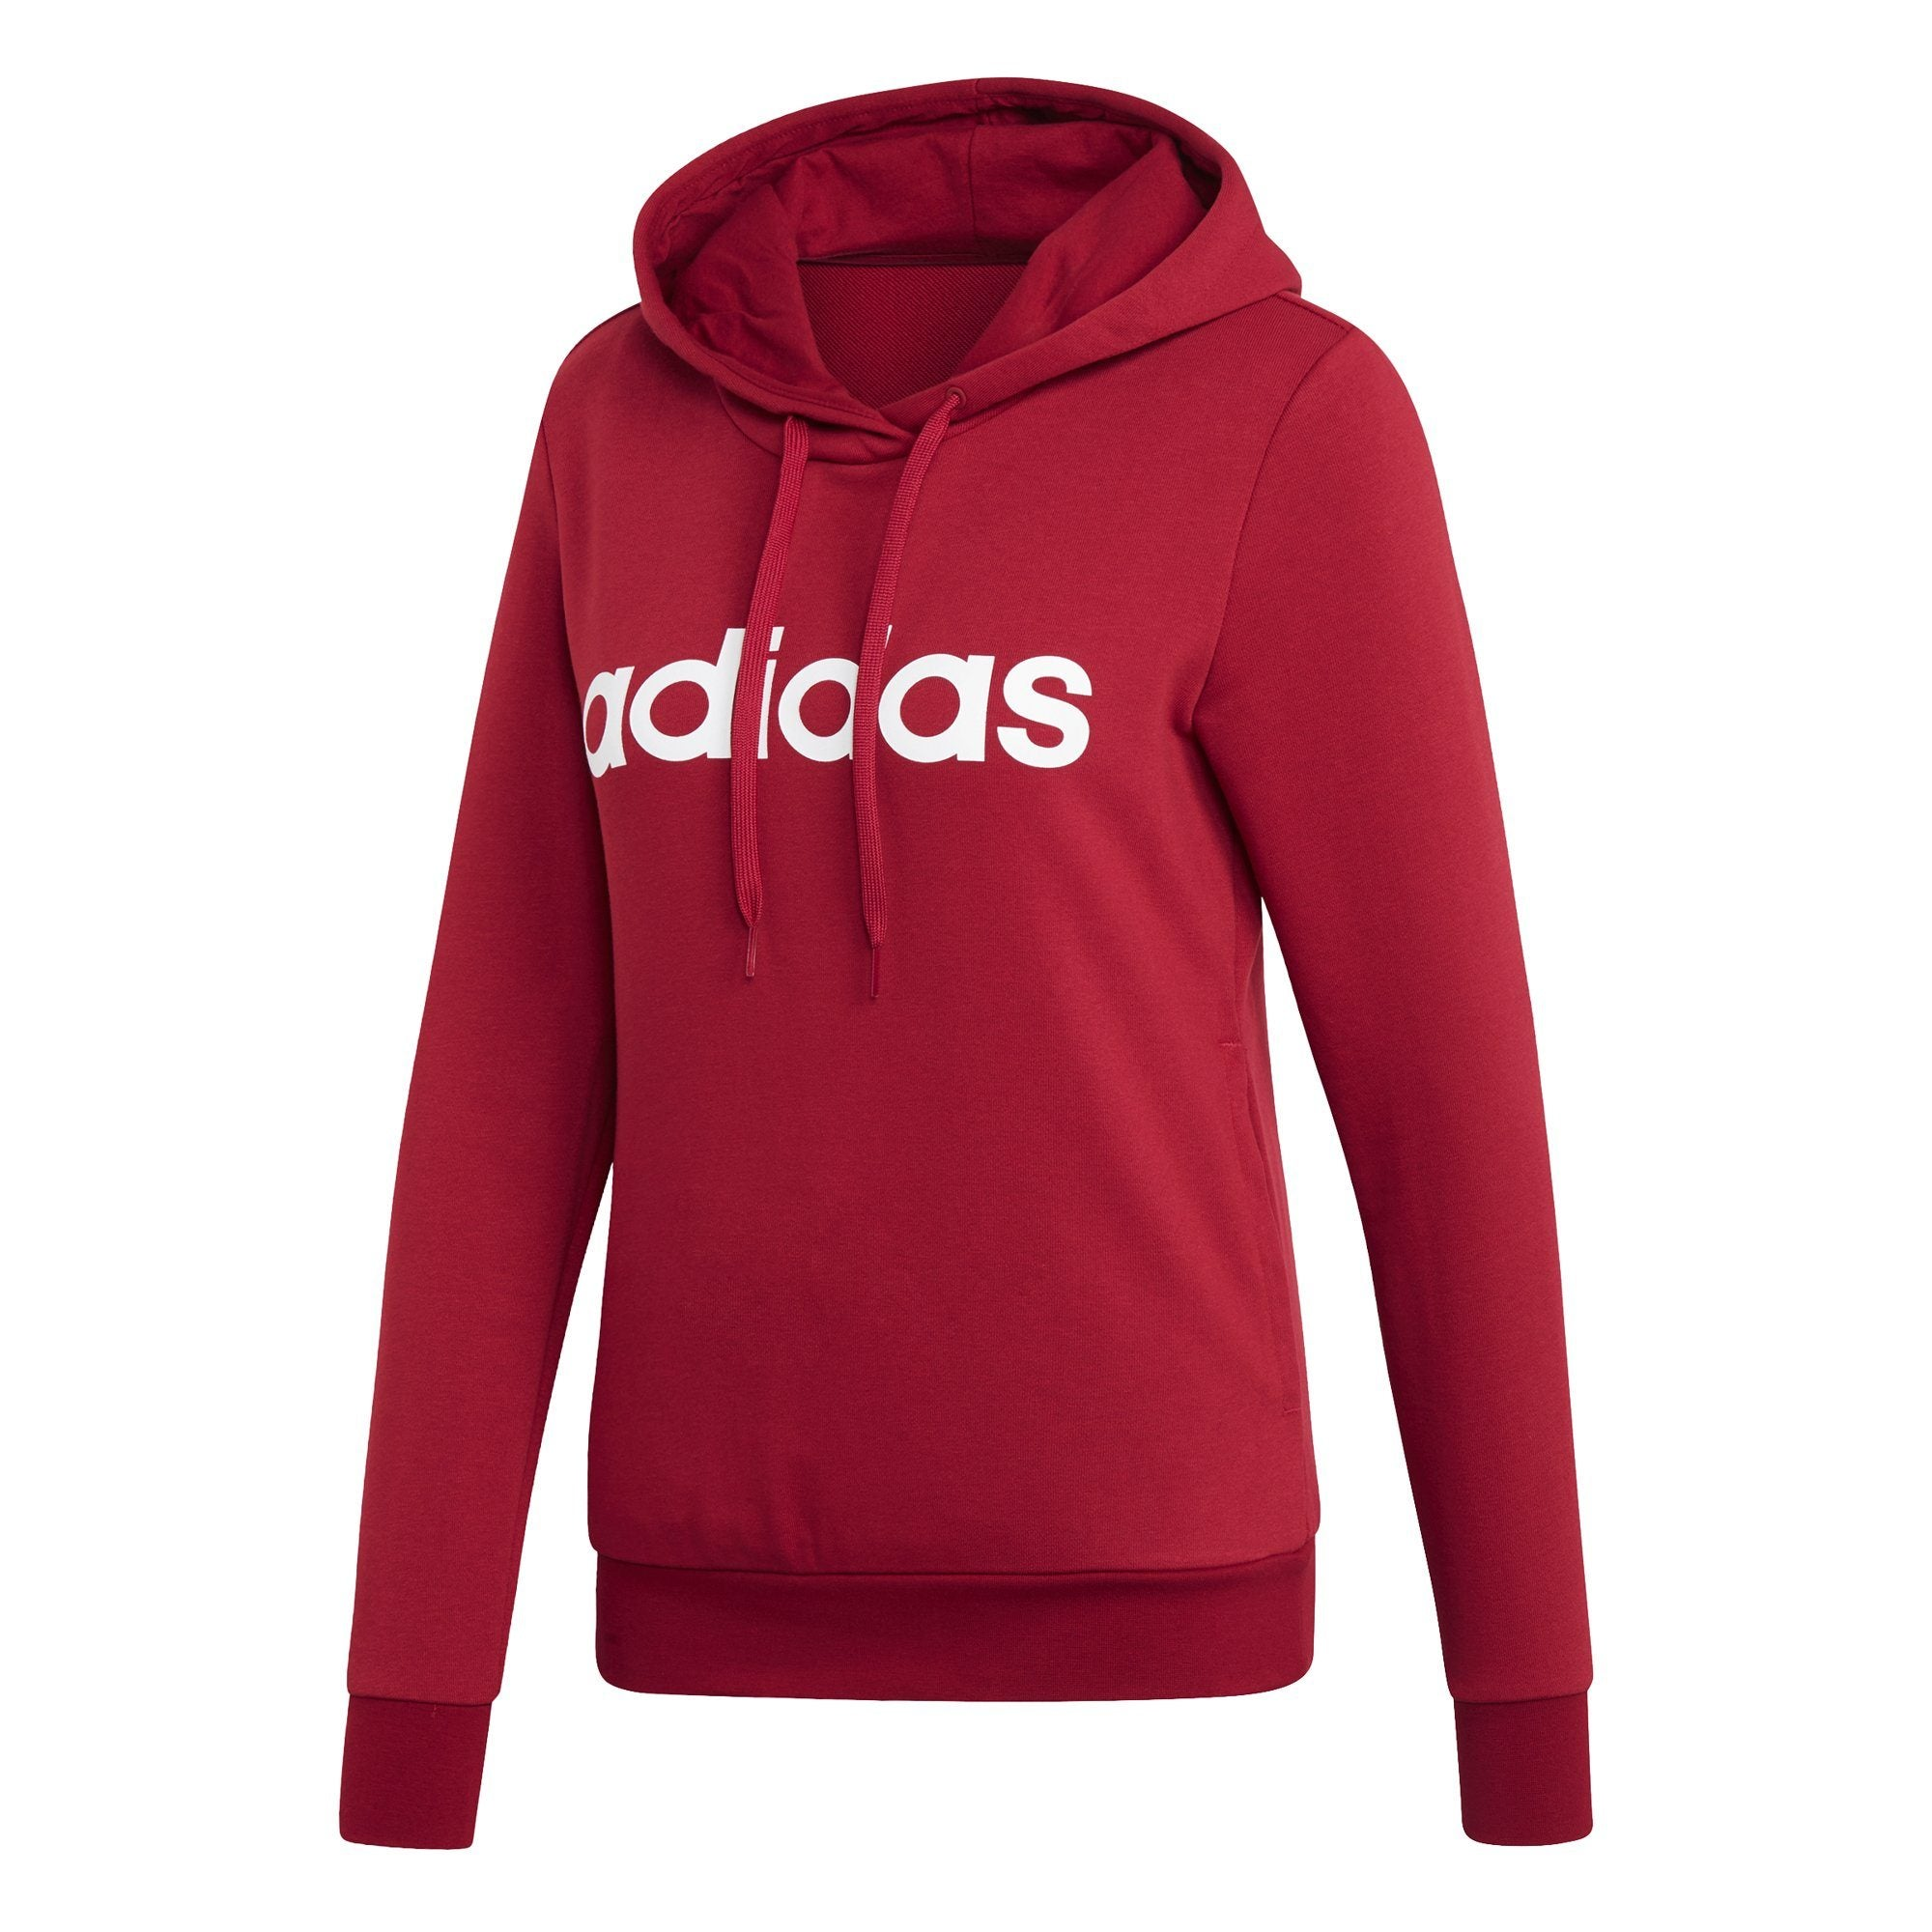 Adidas Womens Essentials Linear Pullover Hoodie - active maroon-white Womens Apparel Adidas